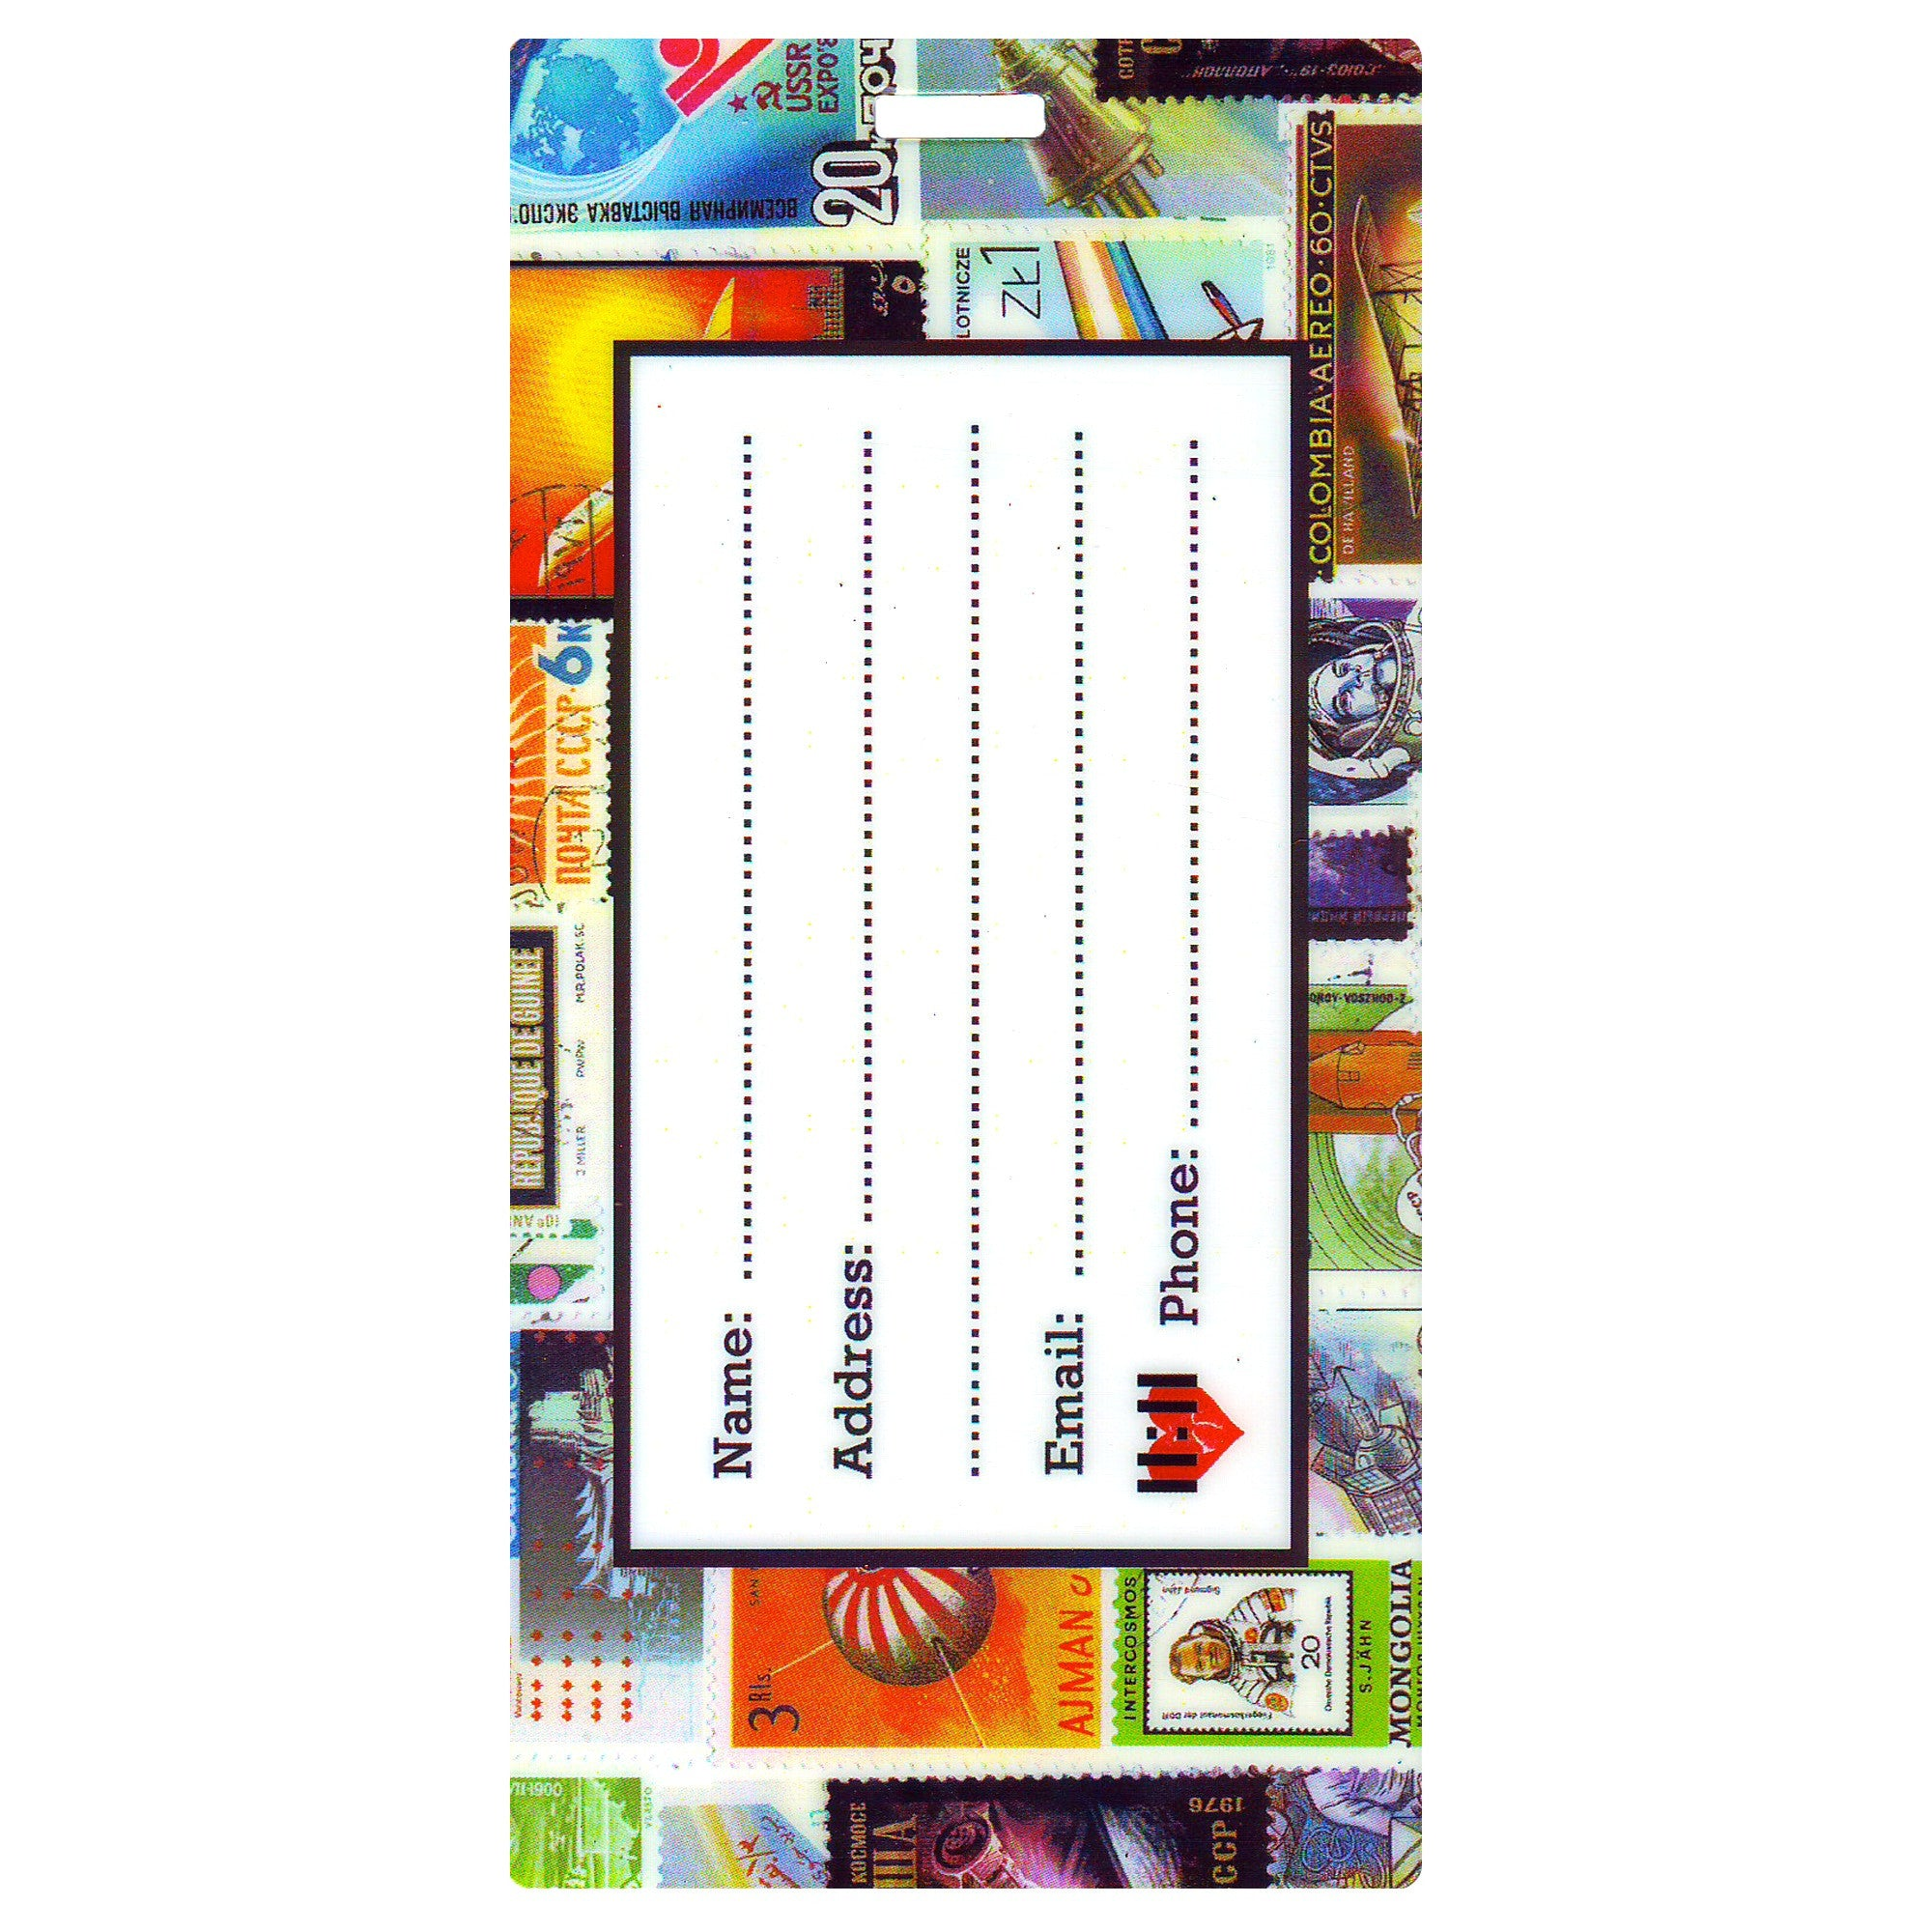 Flying Stamps Luggage Bag Tag Set - 2 pc, Large by 11:11 Enterprisest